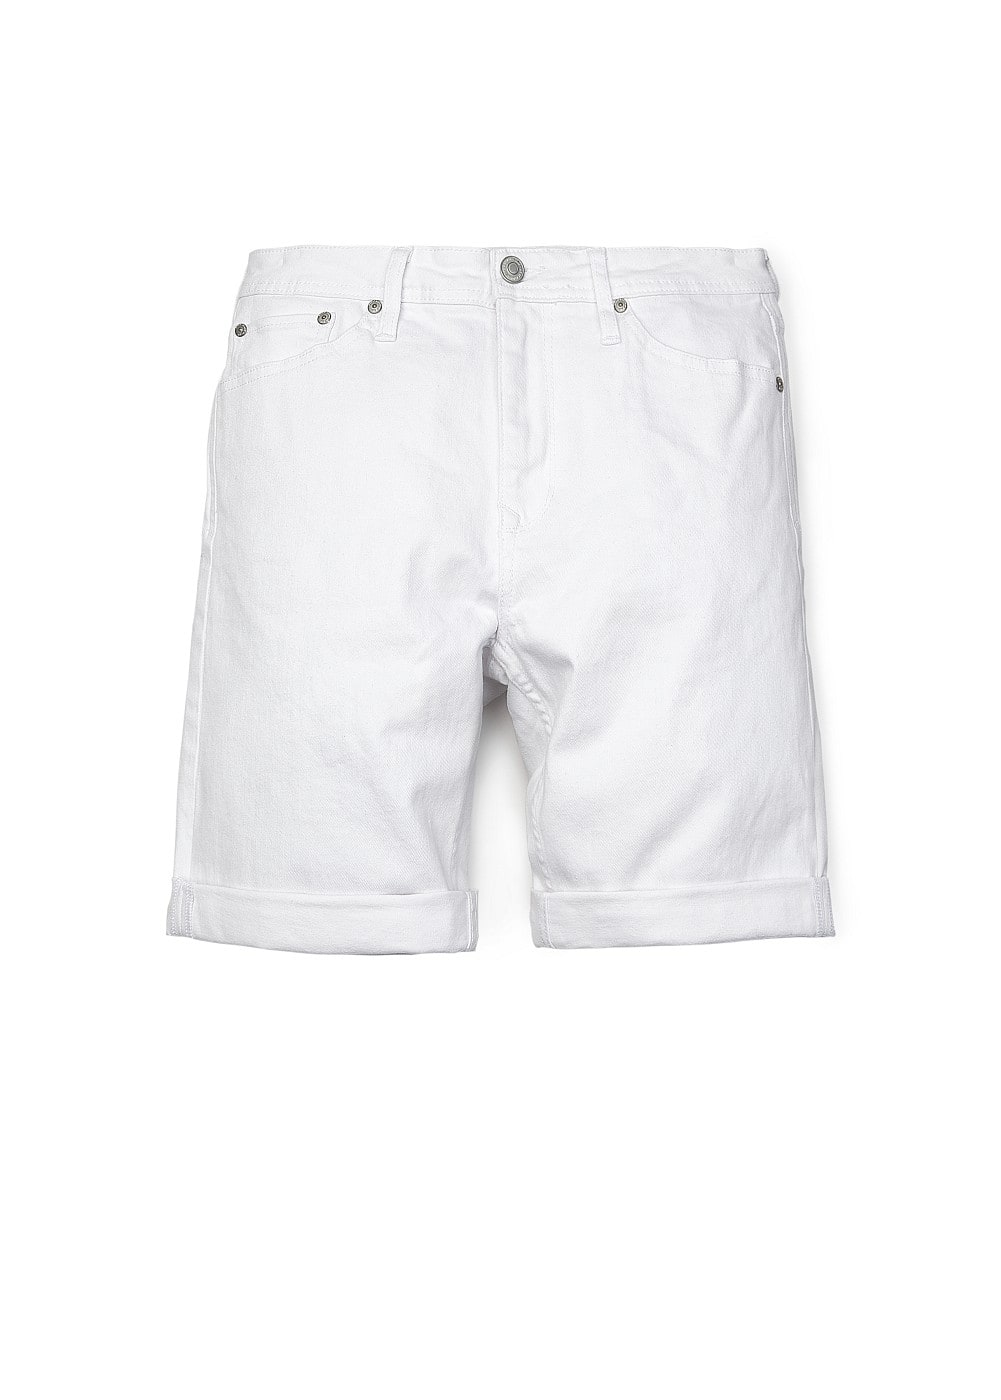 White denim bermuda shorts - Woman | MANGO United Kingdom